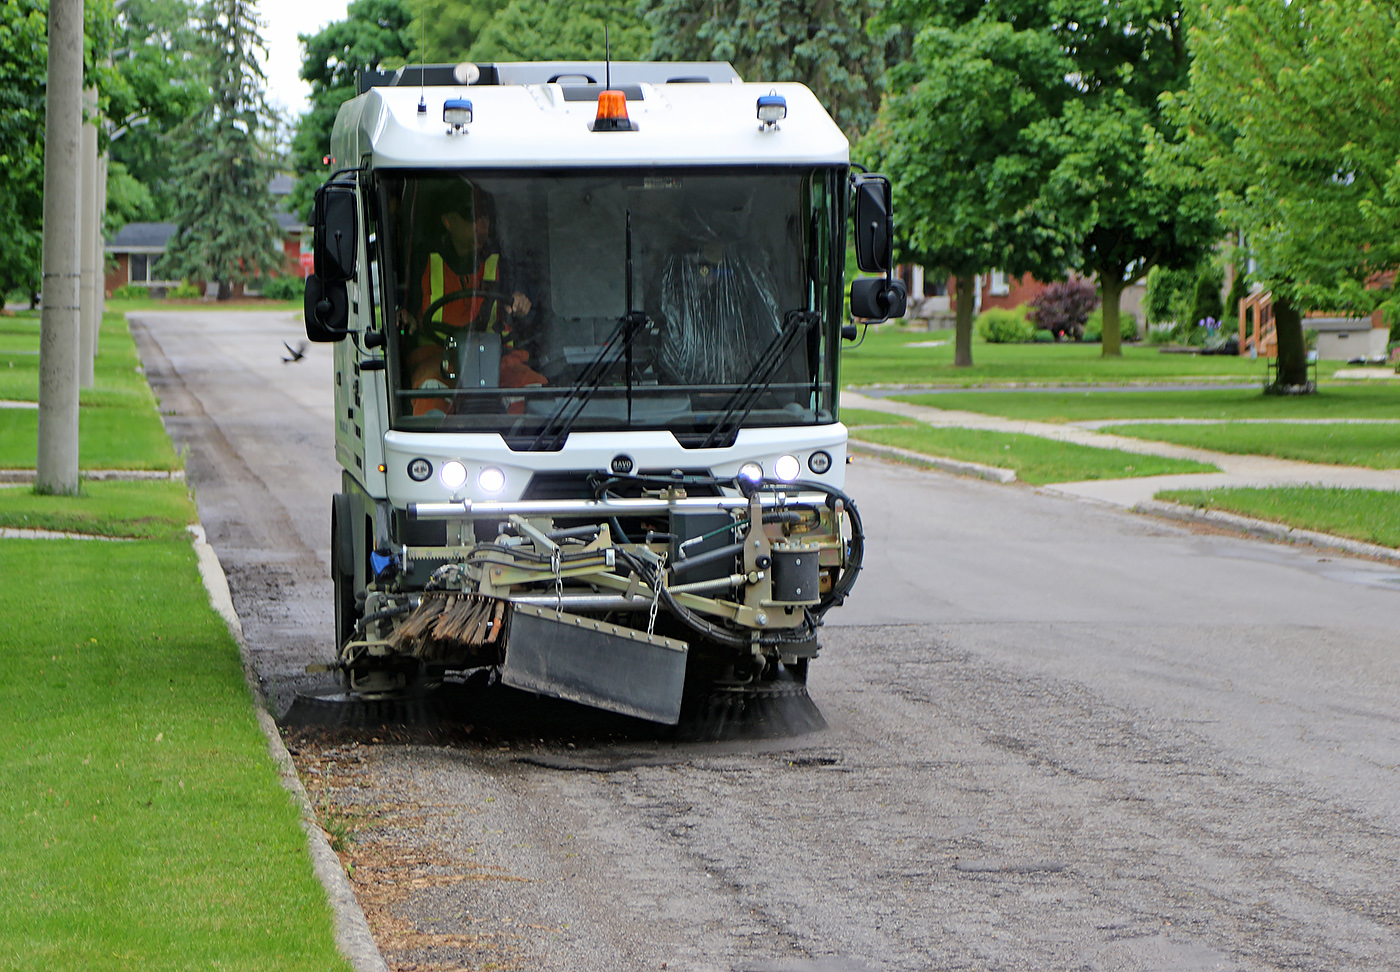 Street sweeper on a tree-lined street